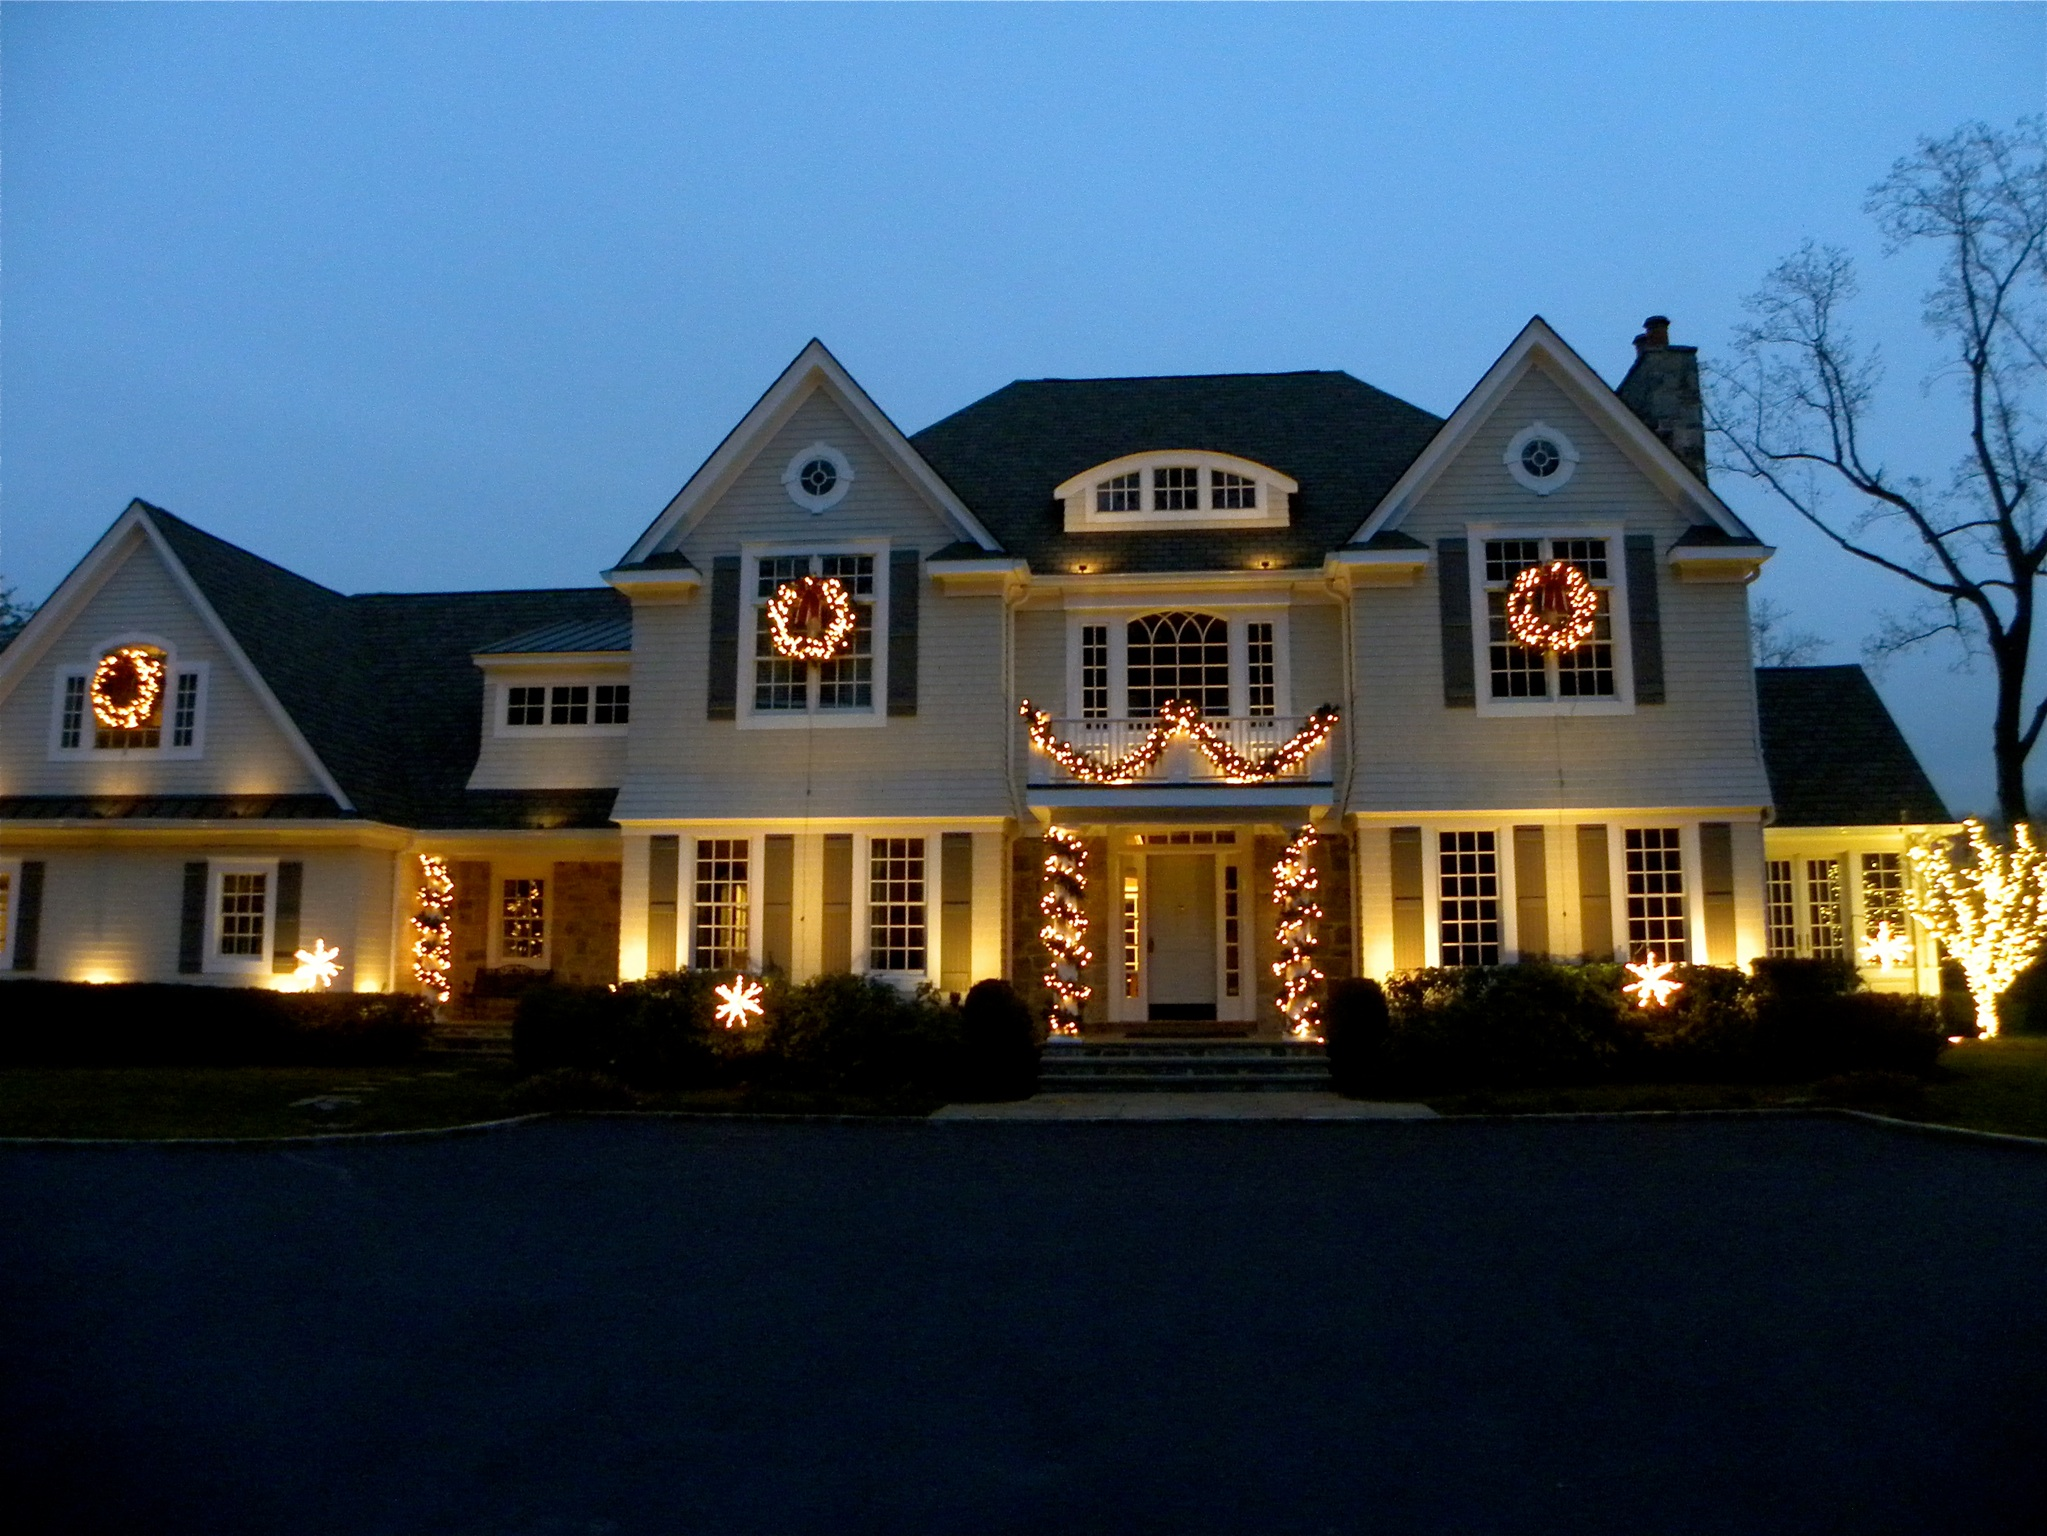 outdoor holiday lighting ideas. House String Lamps Lights Plants Windows Tree Door Outdoor Holiday Lighting Ideas R